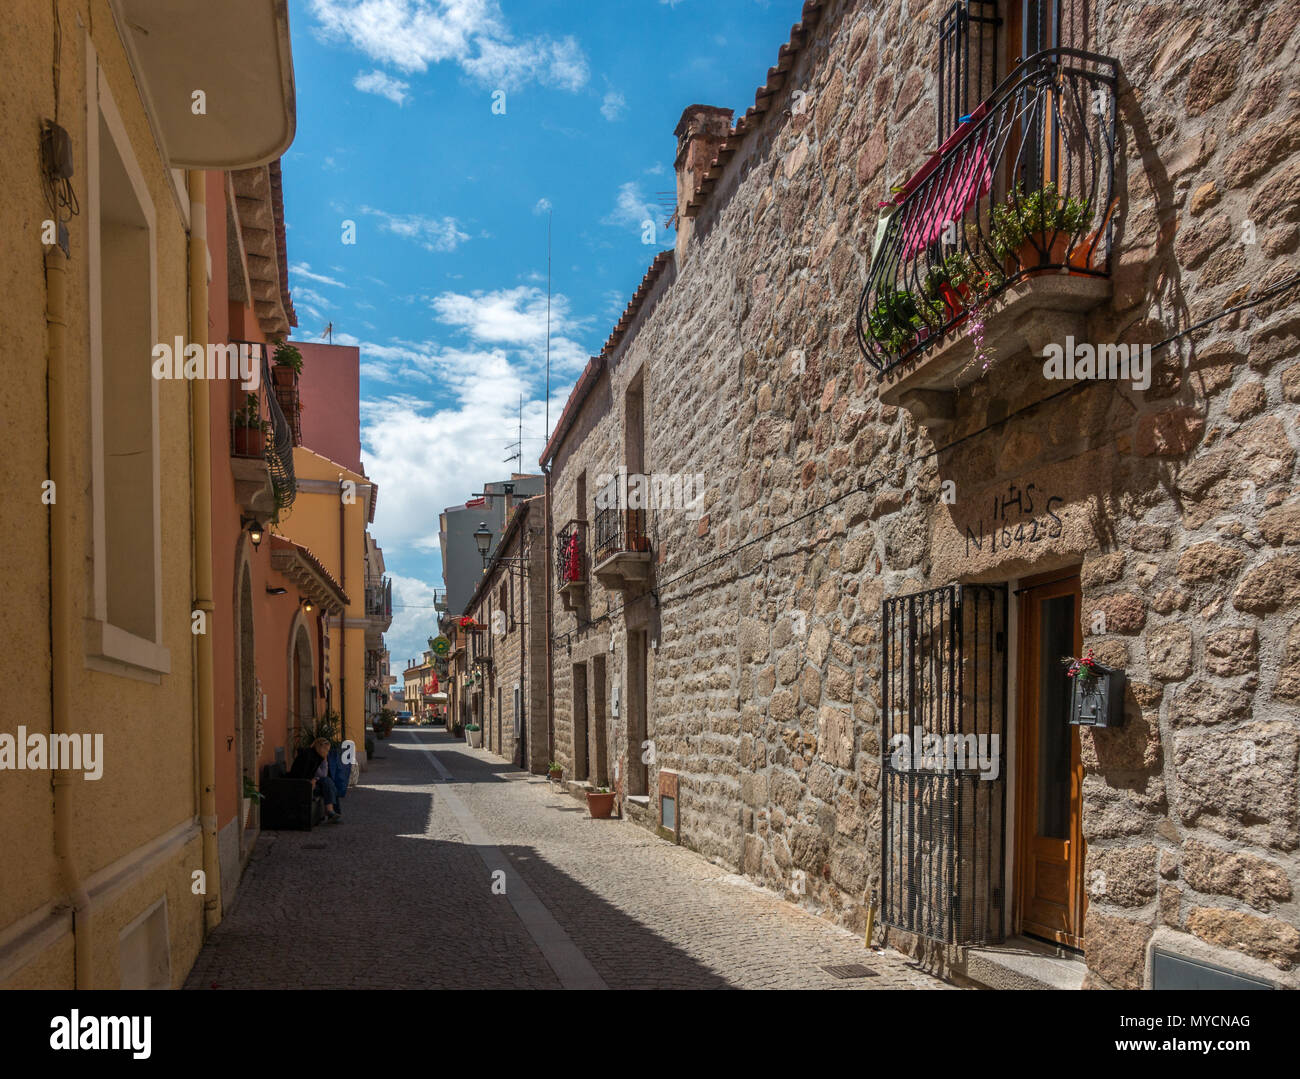 Streets of Olbia old town, Sardinia - Stock Image